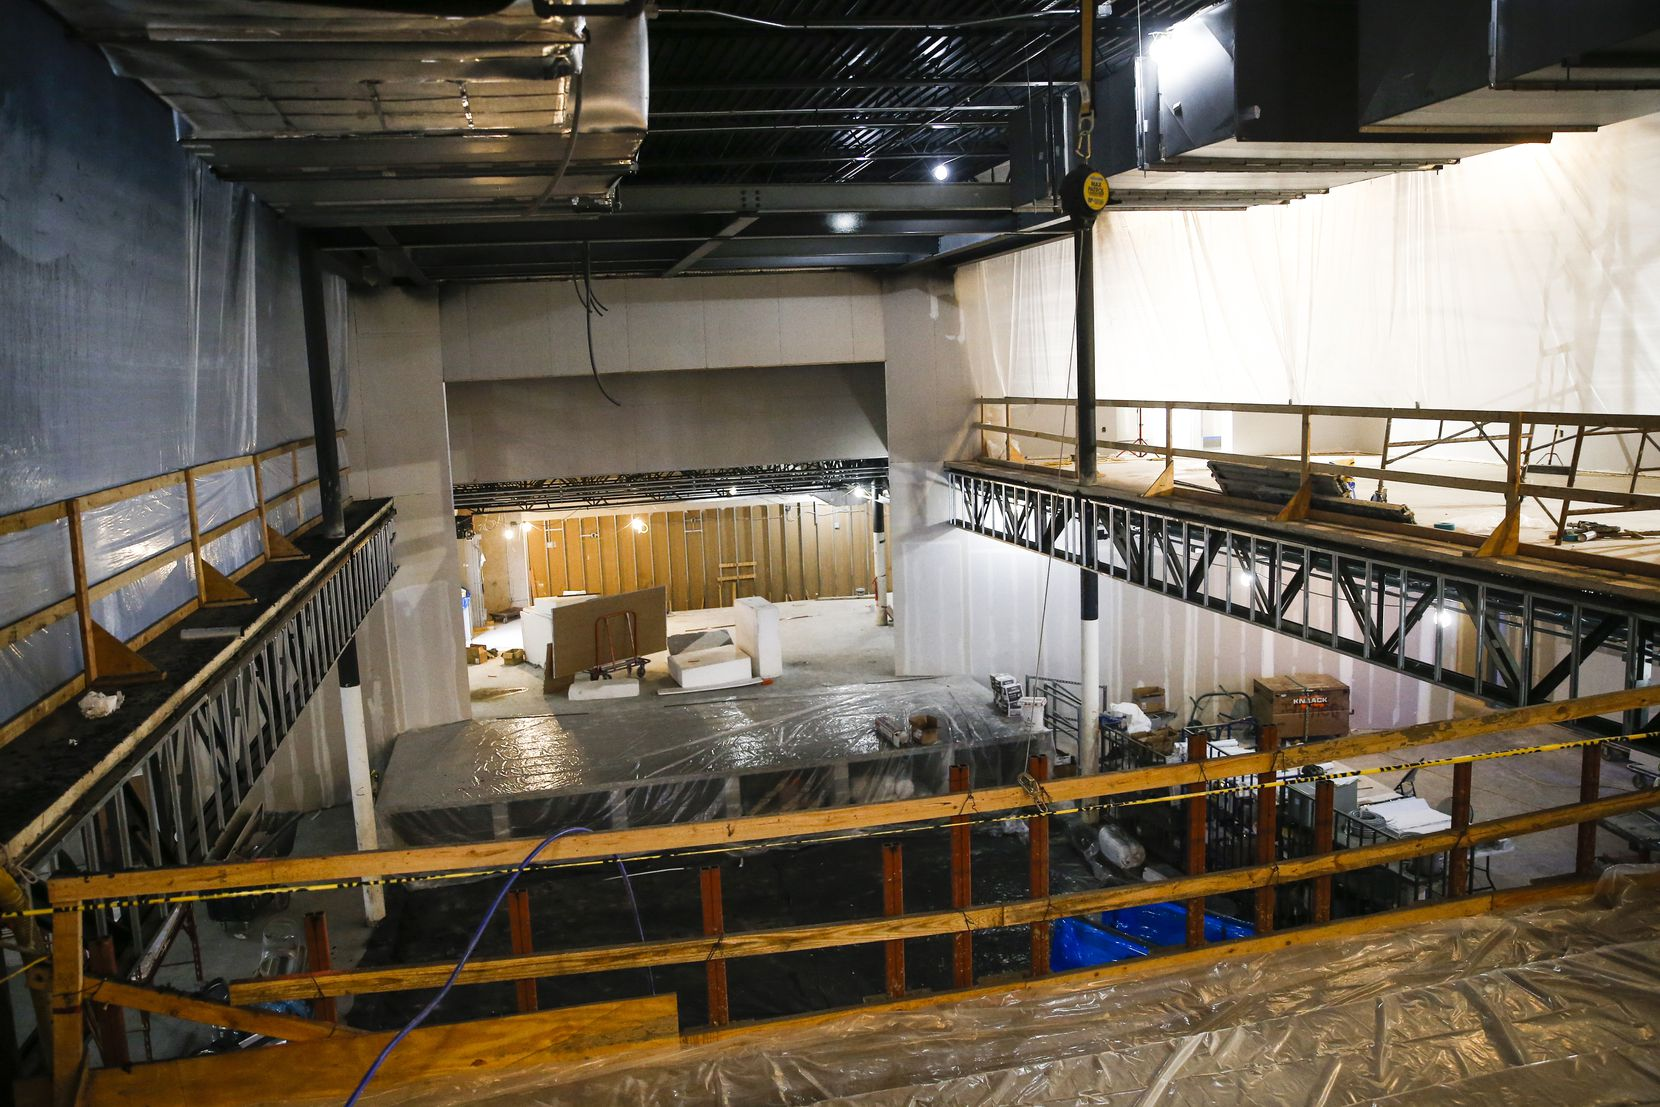 Construction crews are working at the new Live Nation concert venue, The HiFi Dallas, which is set to open in Dallas' Design District in May.